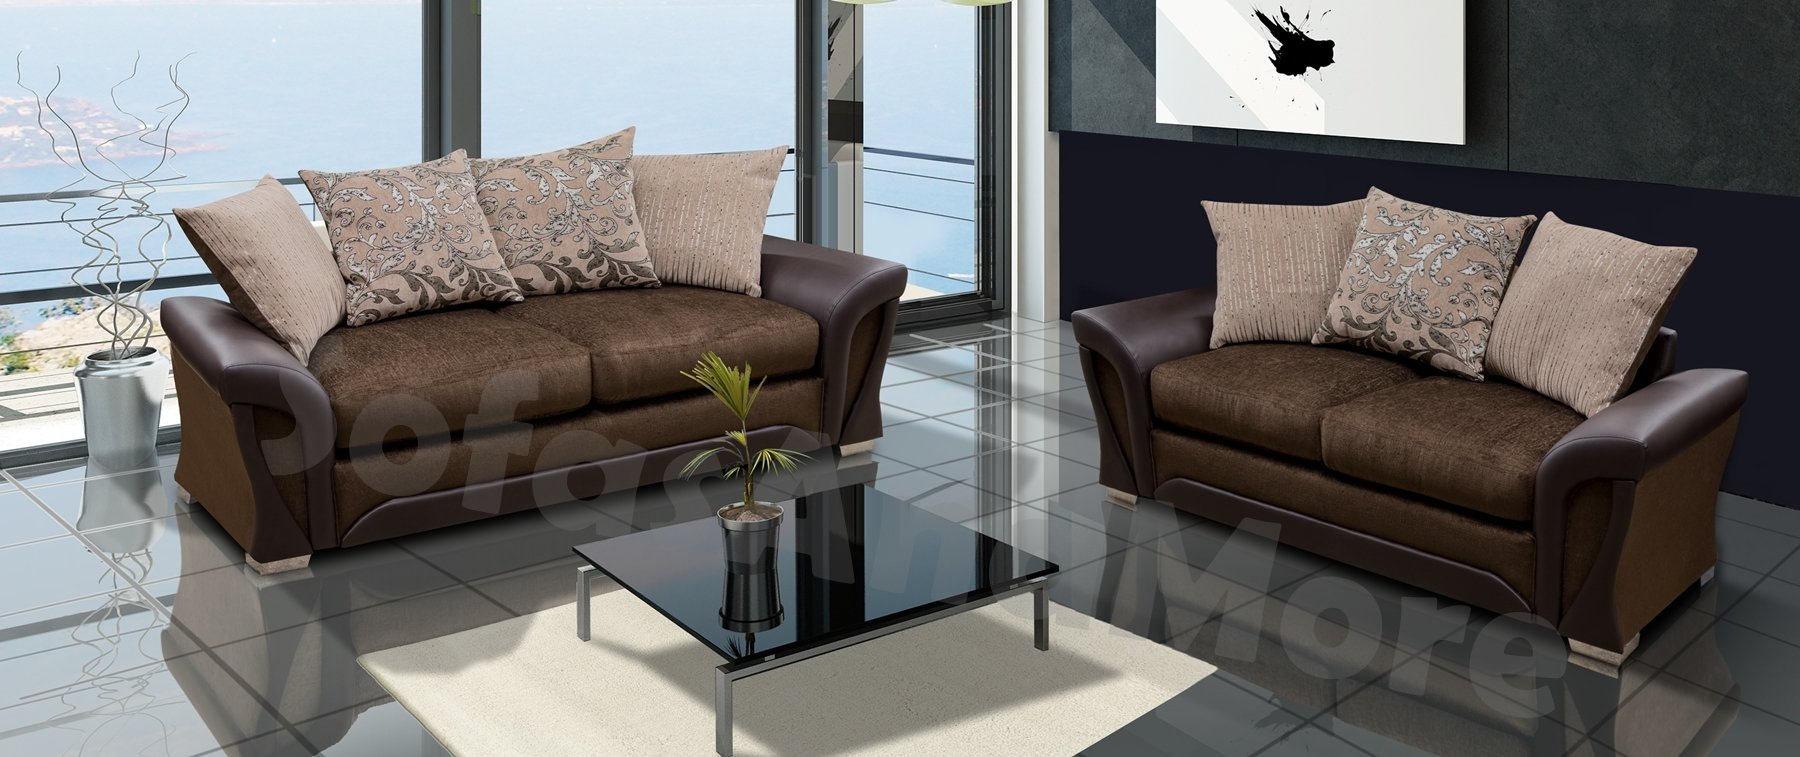 SHARON 3+2 SEATER SOFA SET BROWN OR BLACK AND GREY FABRIC LEATHER (Brown)